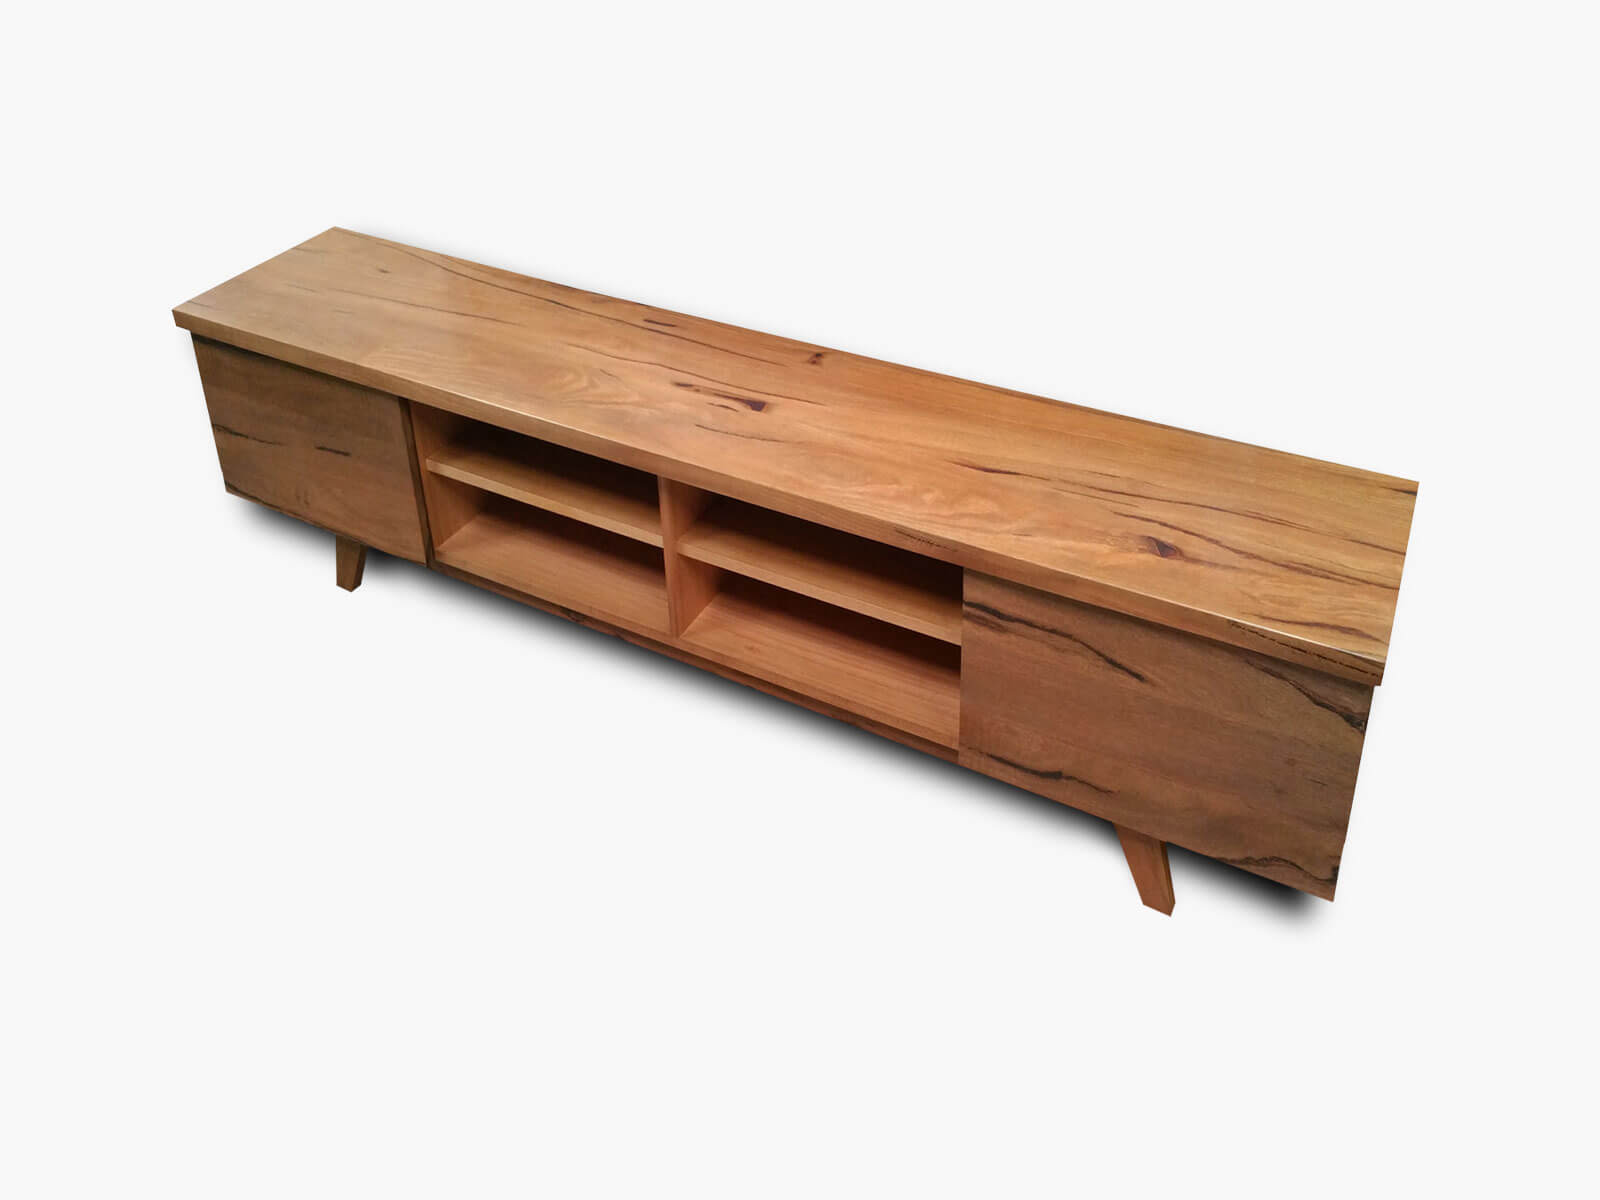 Retro-TV Timber Furniture